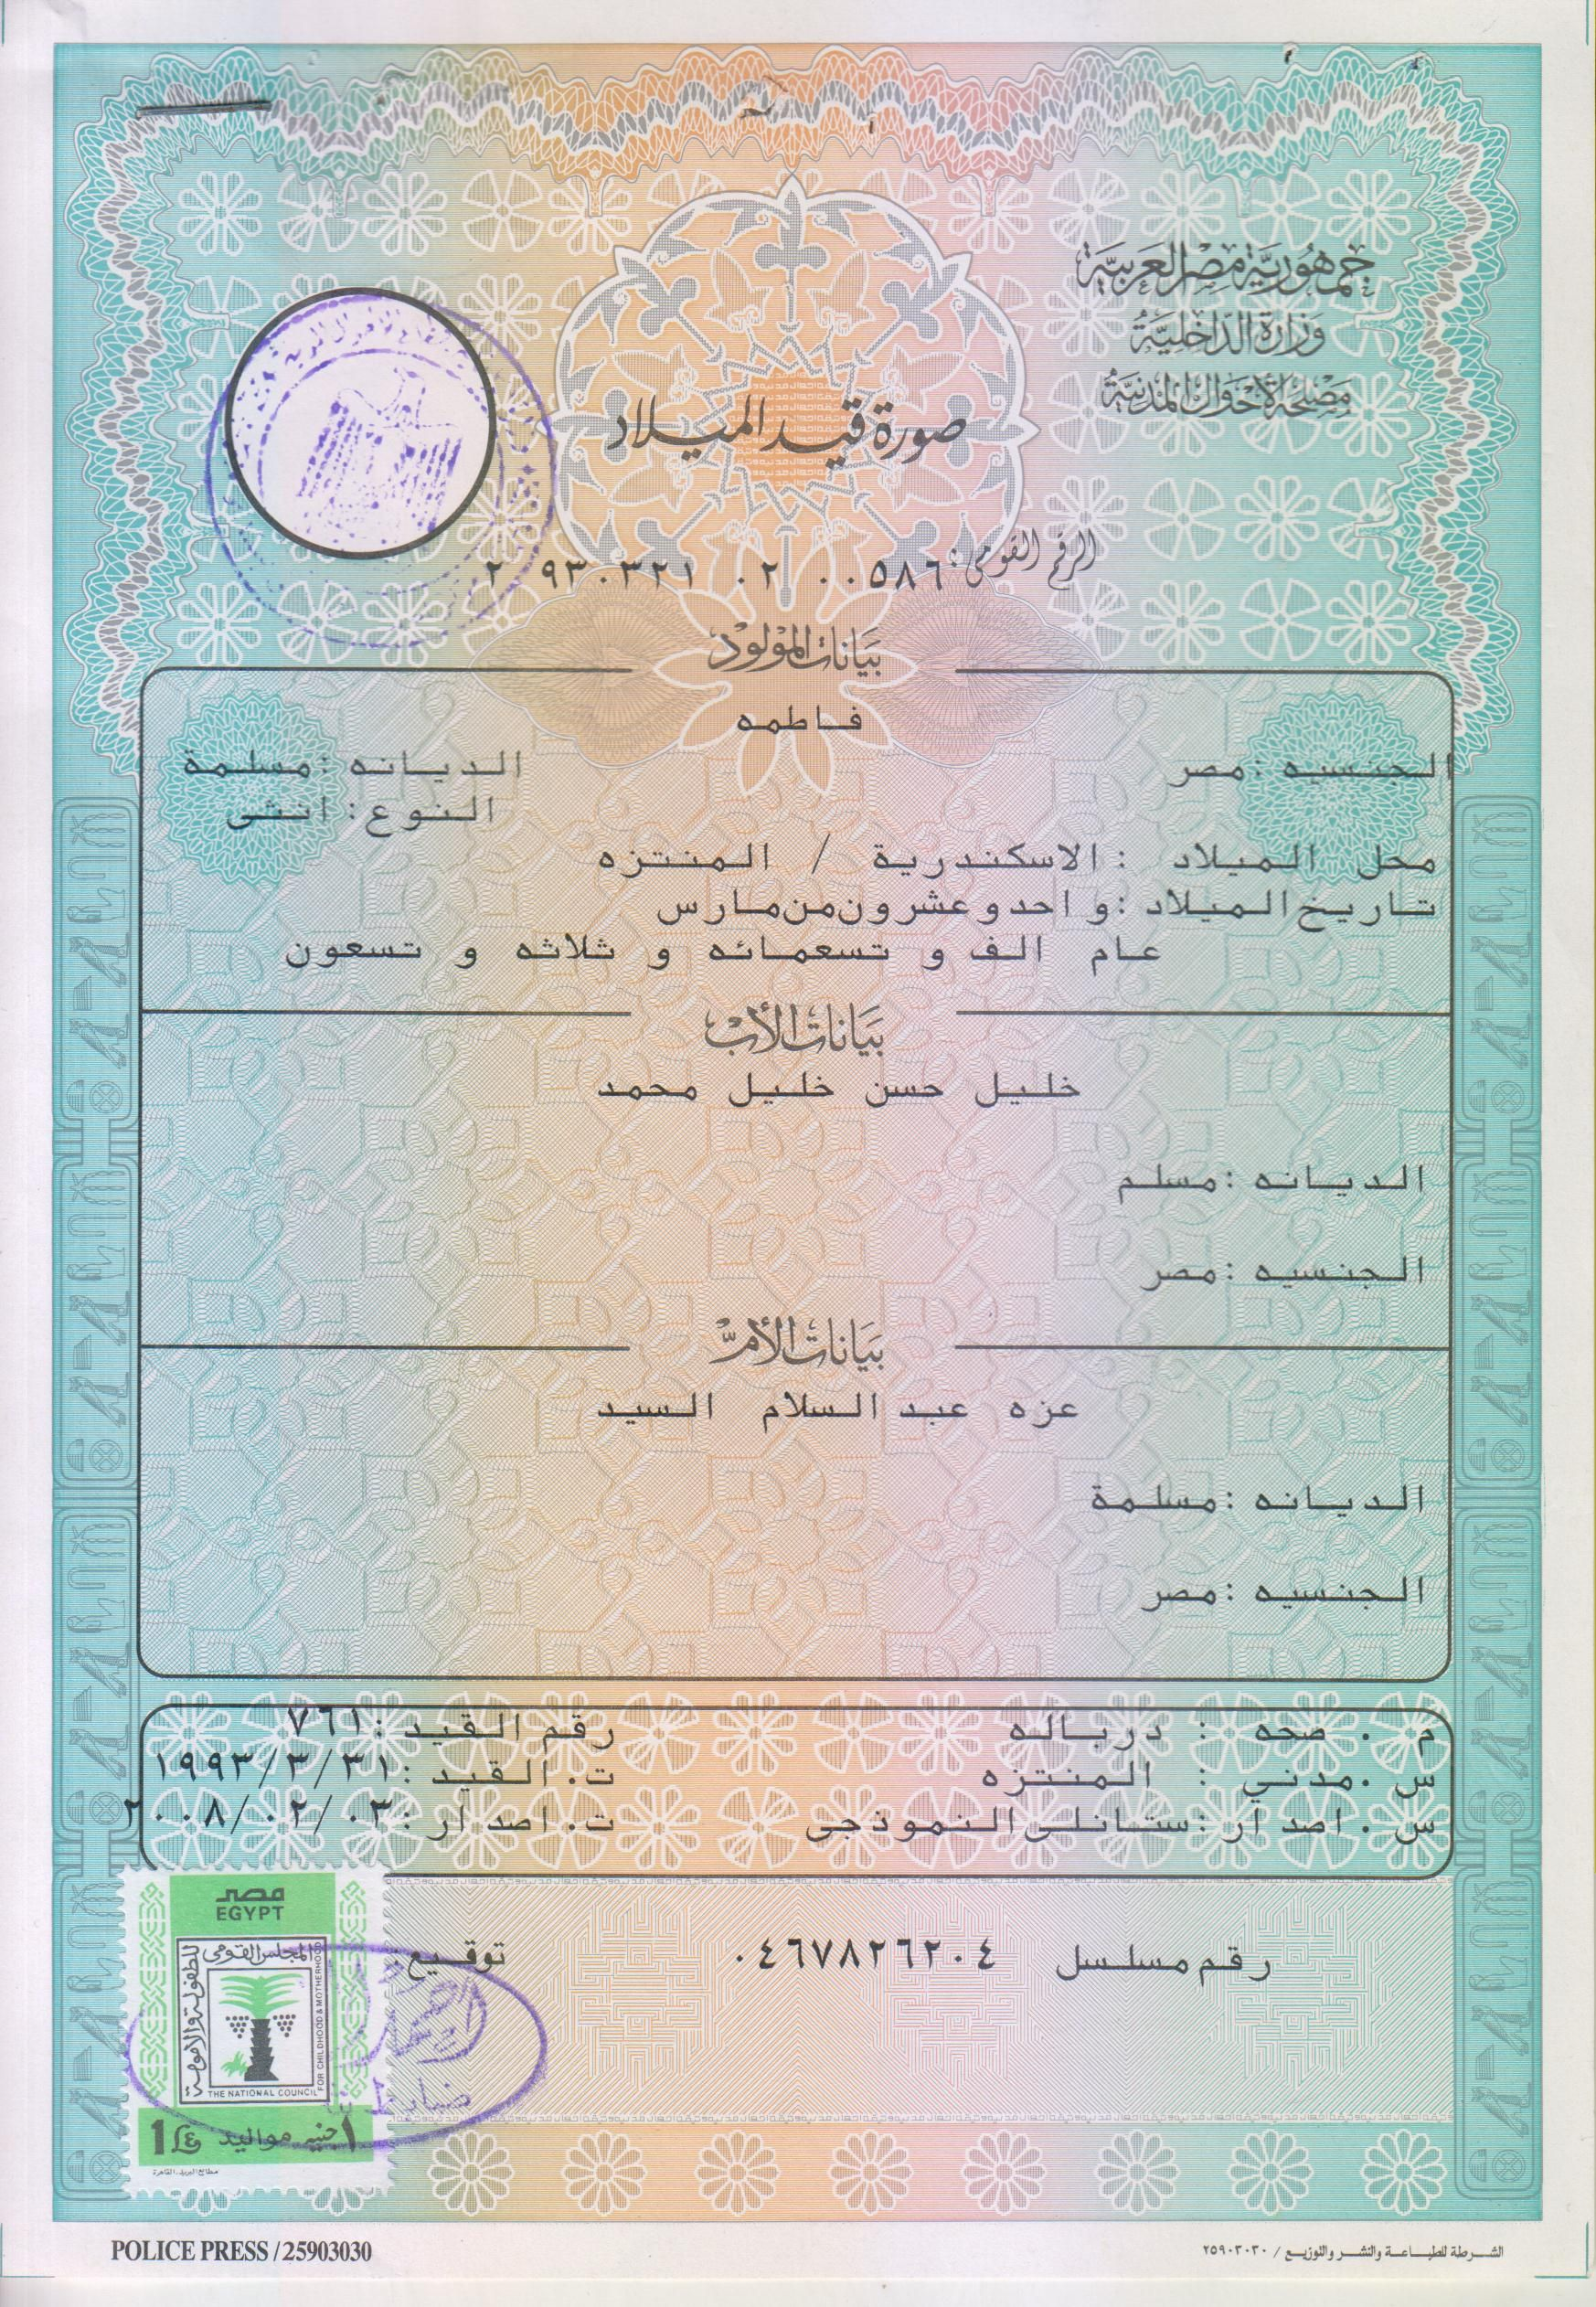 Pin By Ahmed Muhammed On شهادة الميلاد Personalised Journal Personalized Items